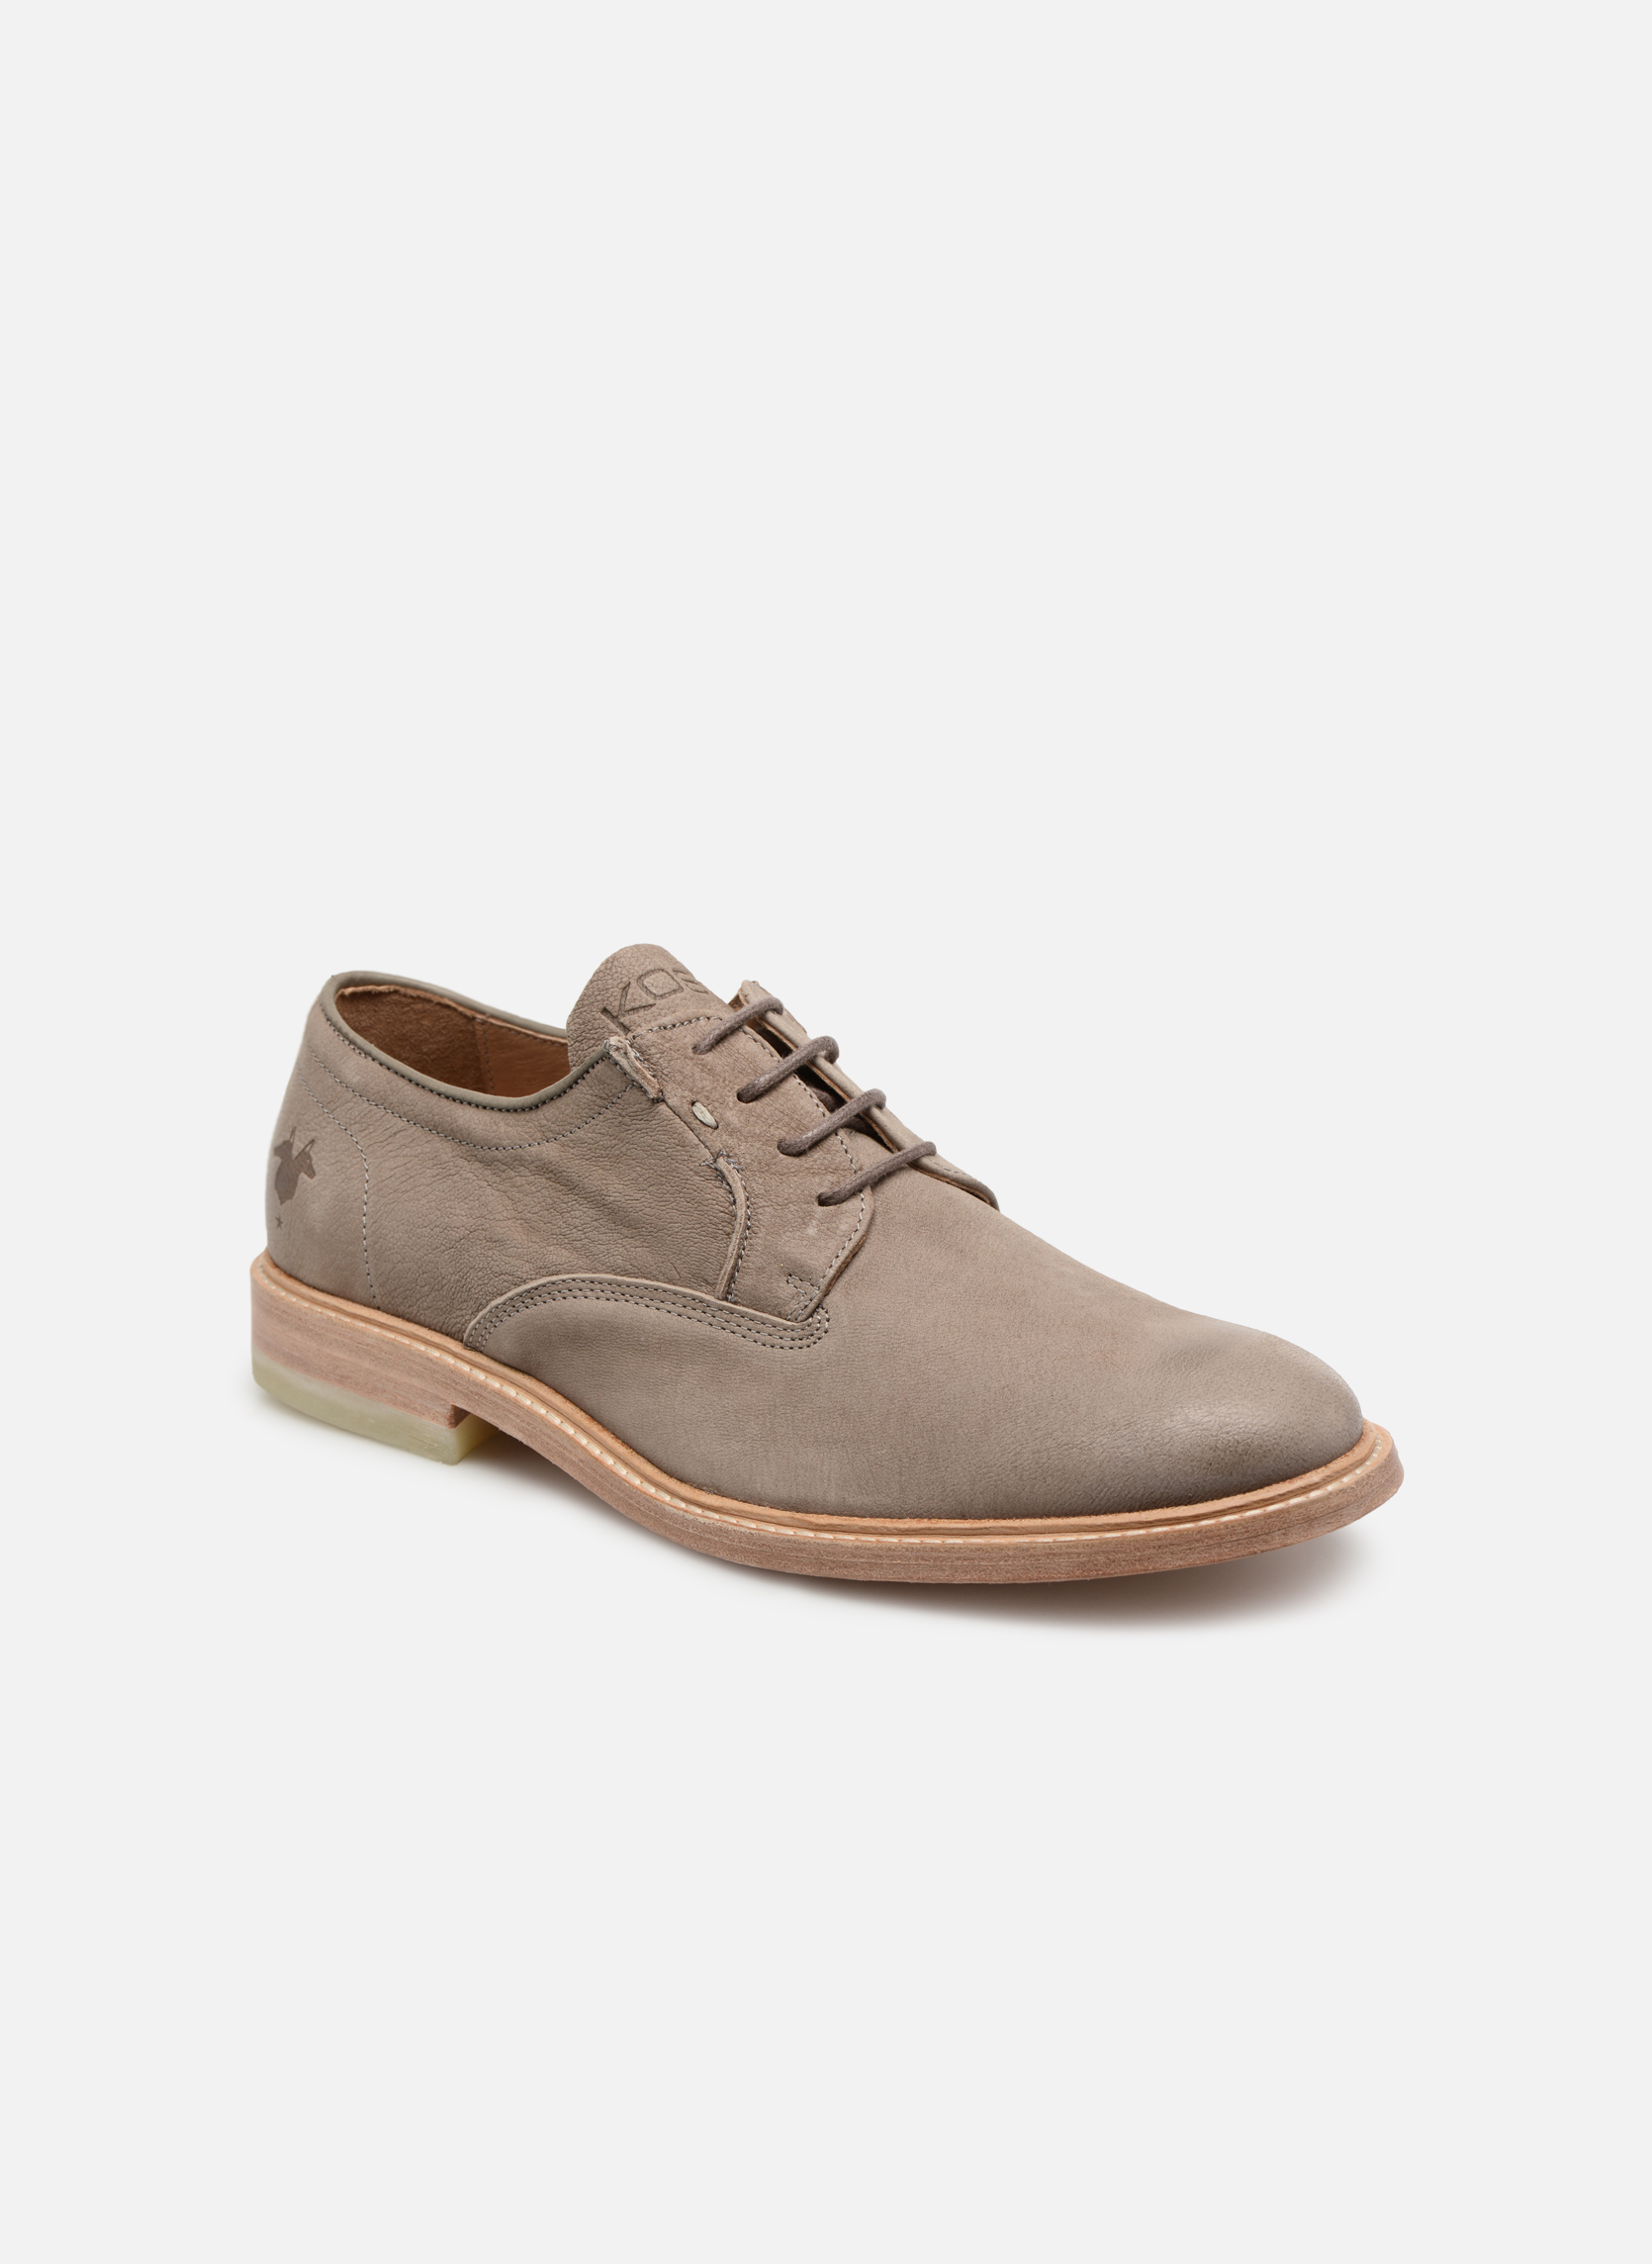 Chaussures à lacets Homme Mayall